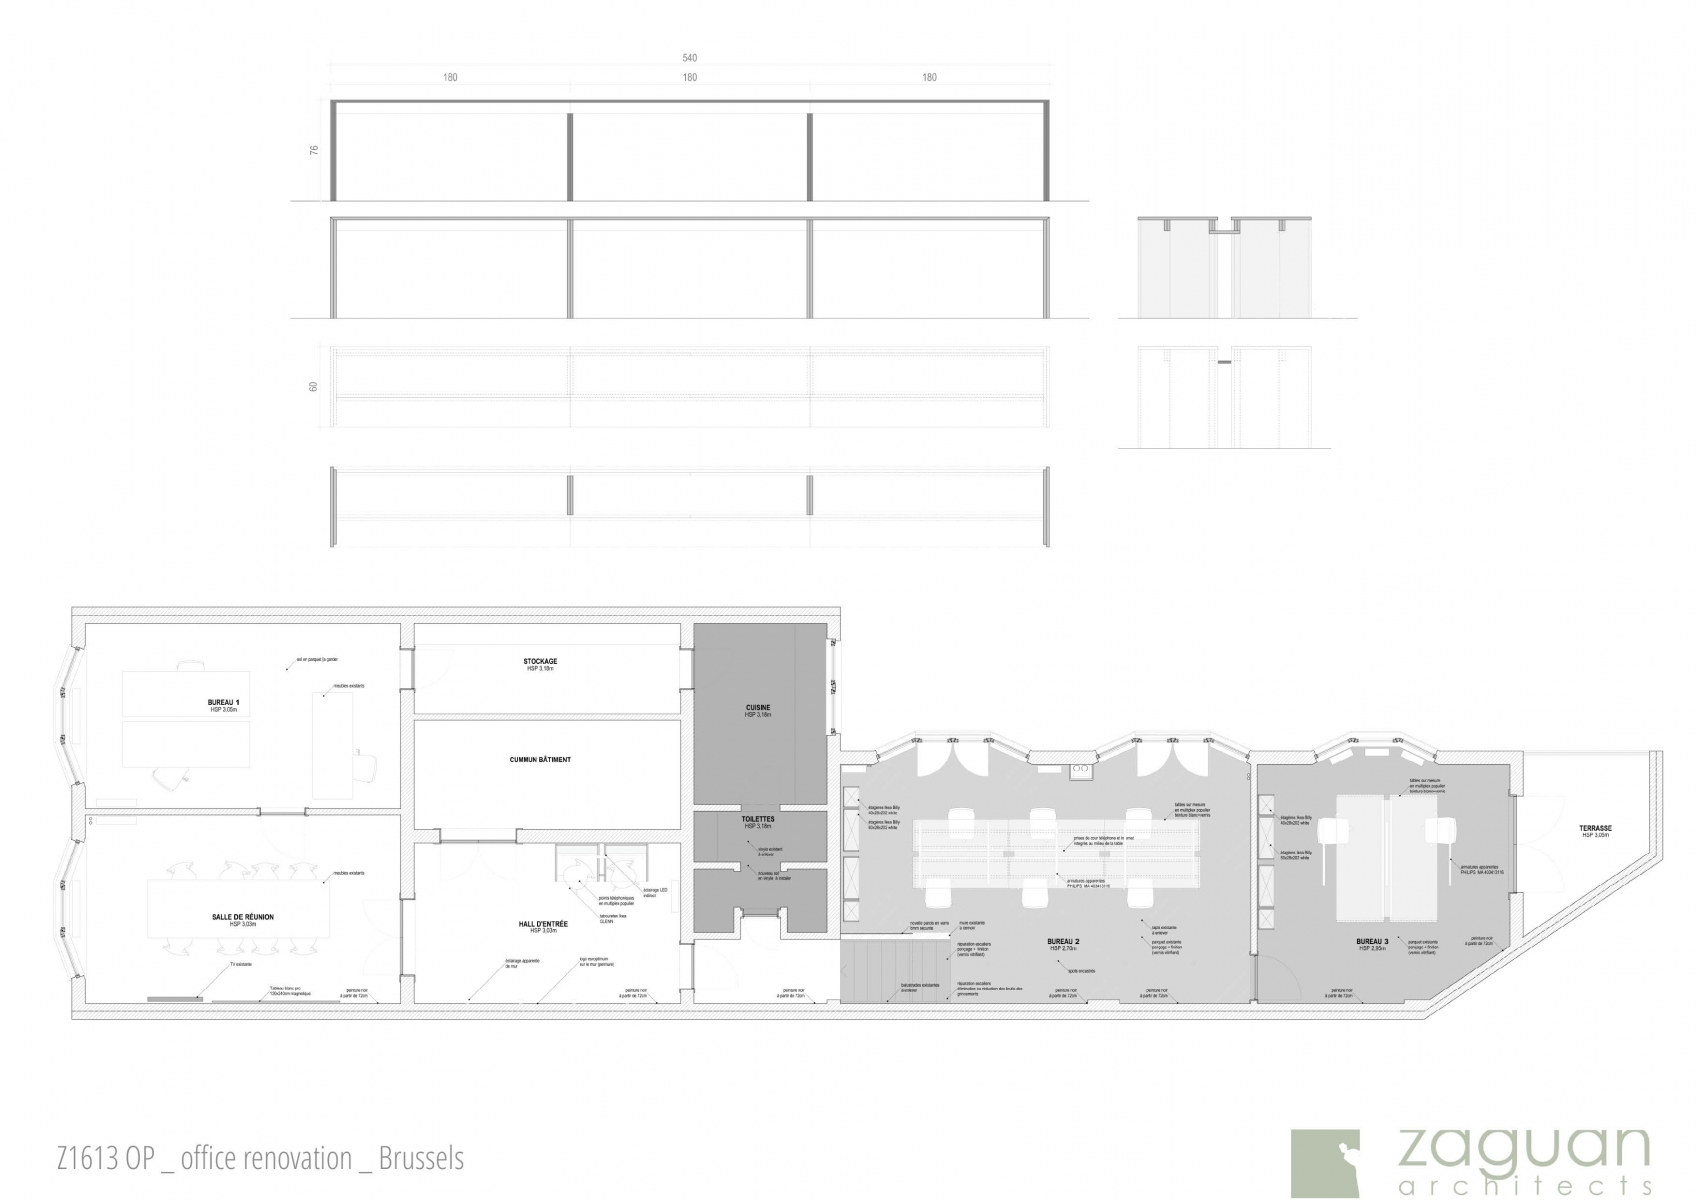 zaguanarchitects office renovation brussel 1613 03